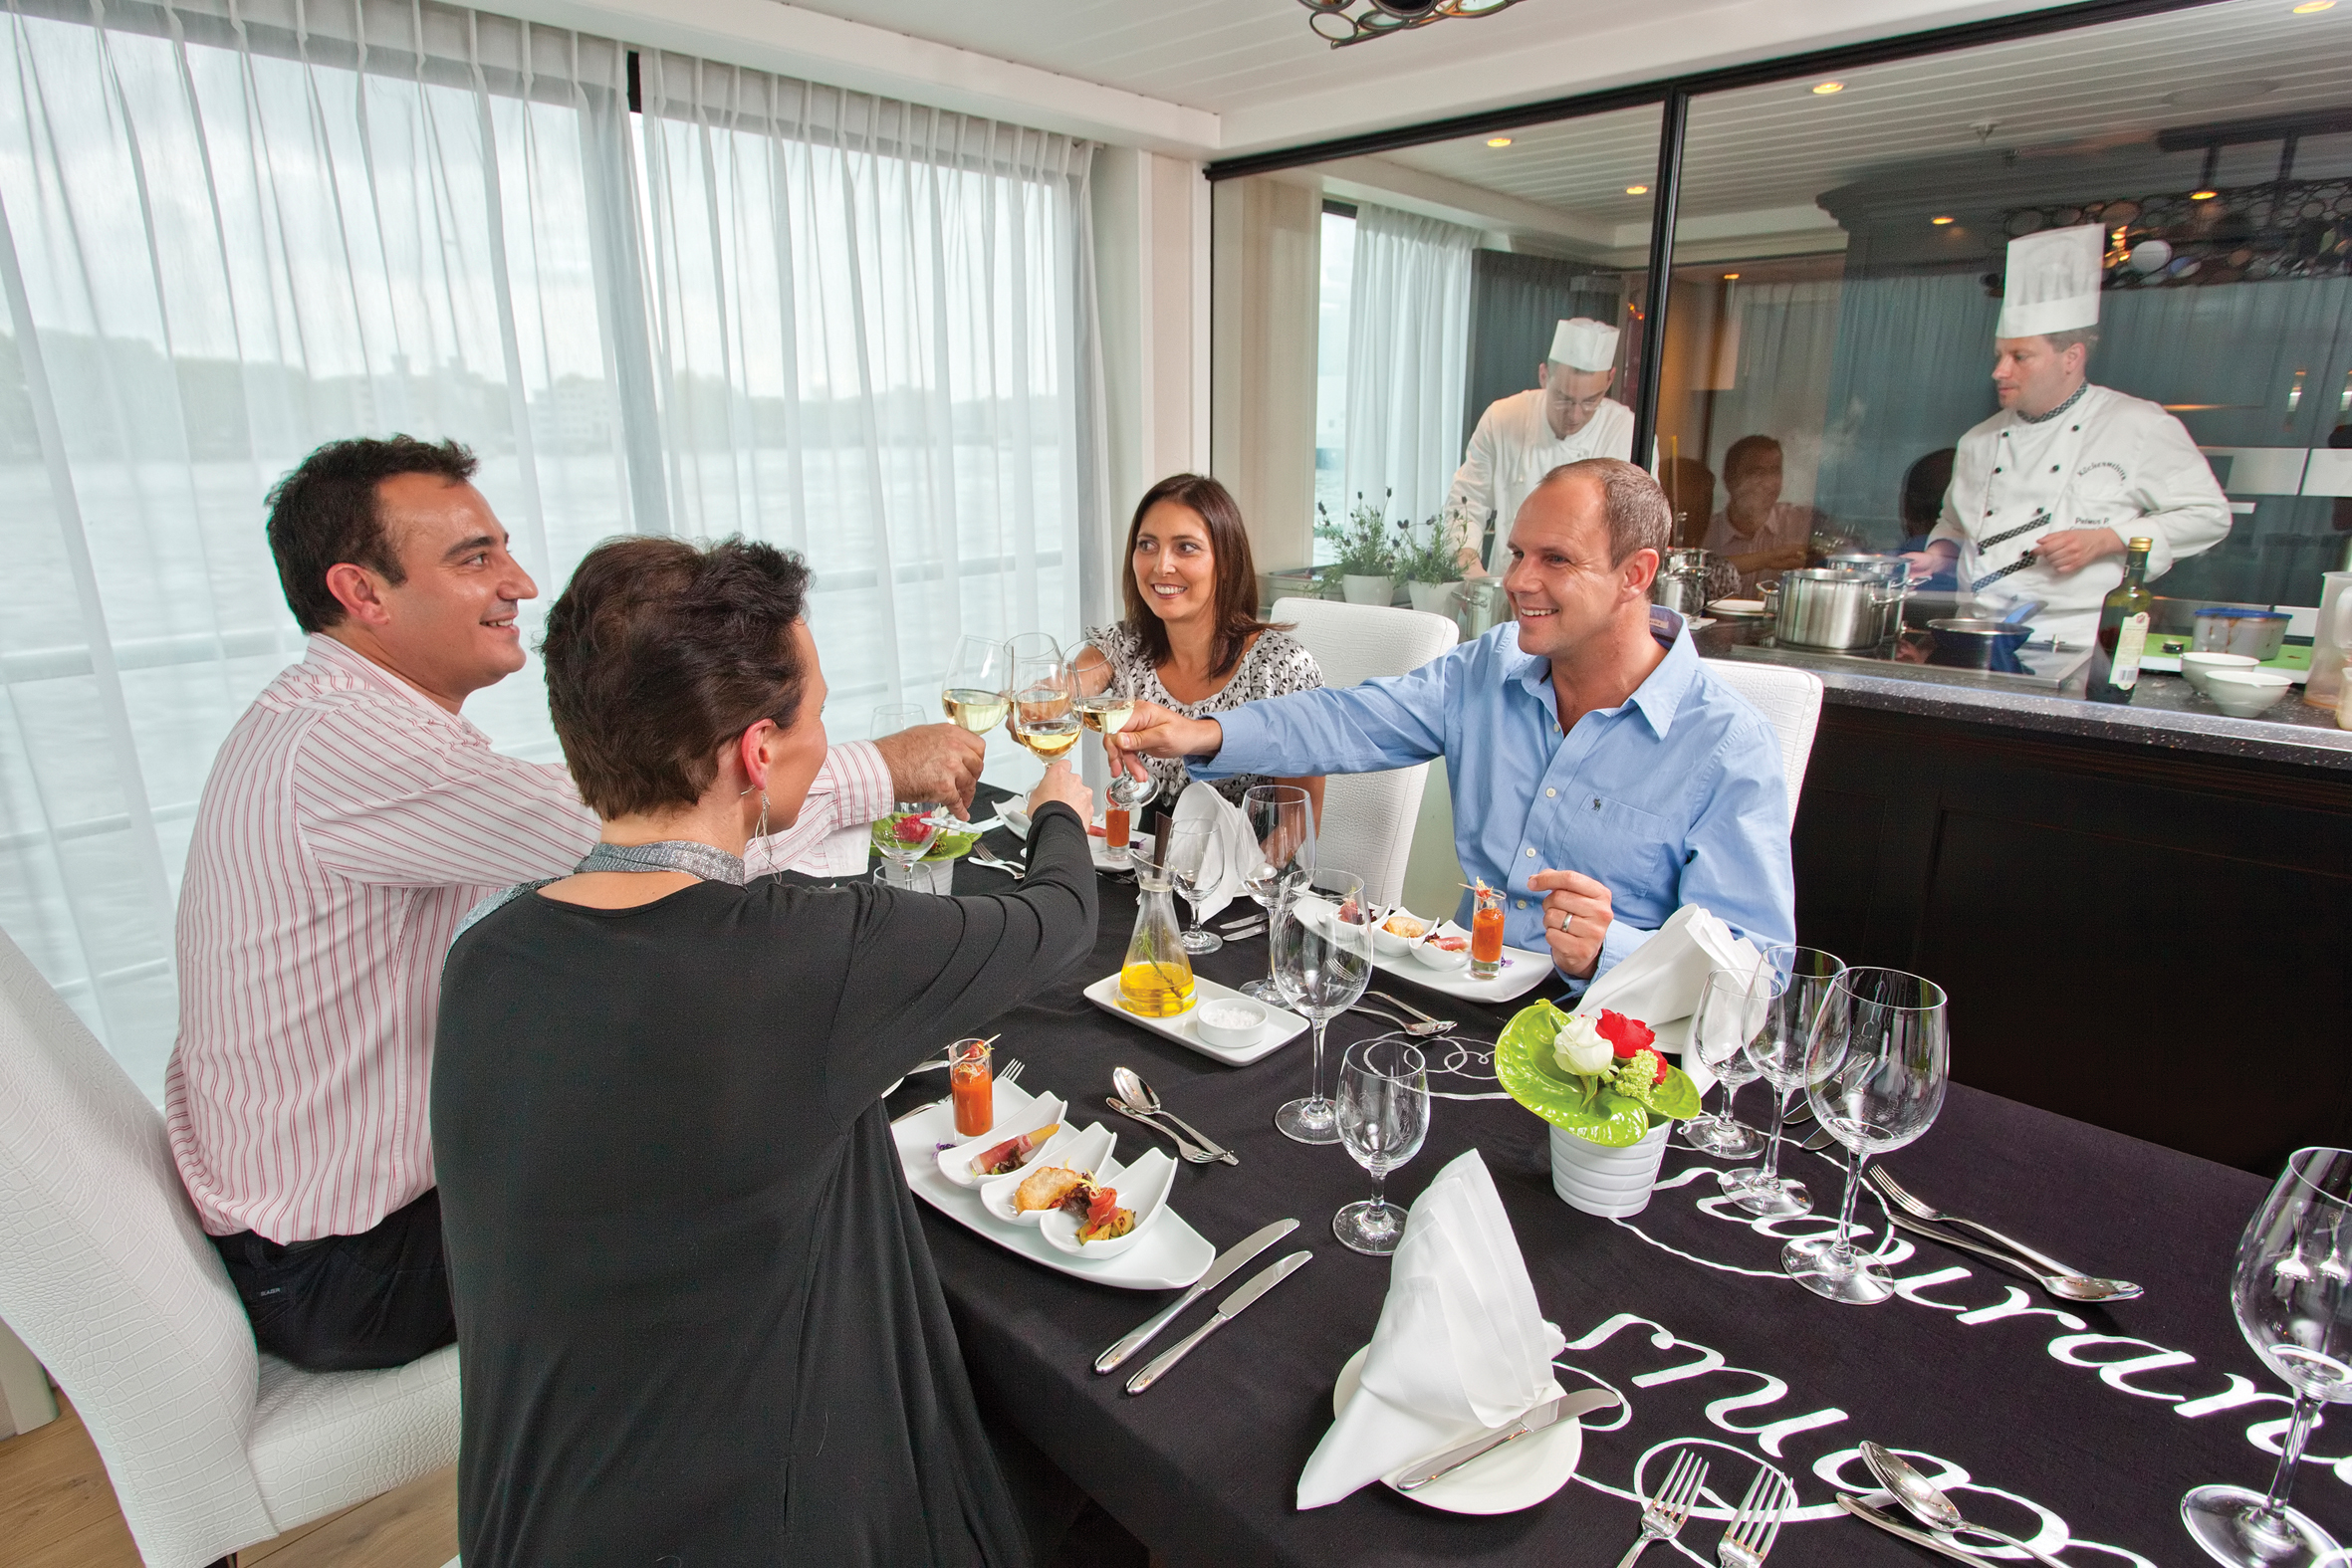 AmaWaterways AmaVerde AmaBella Interior Chefs Table 2.jpg